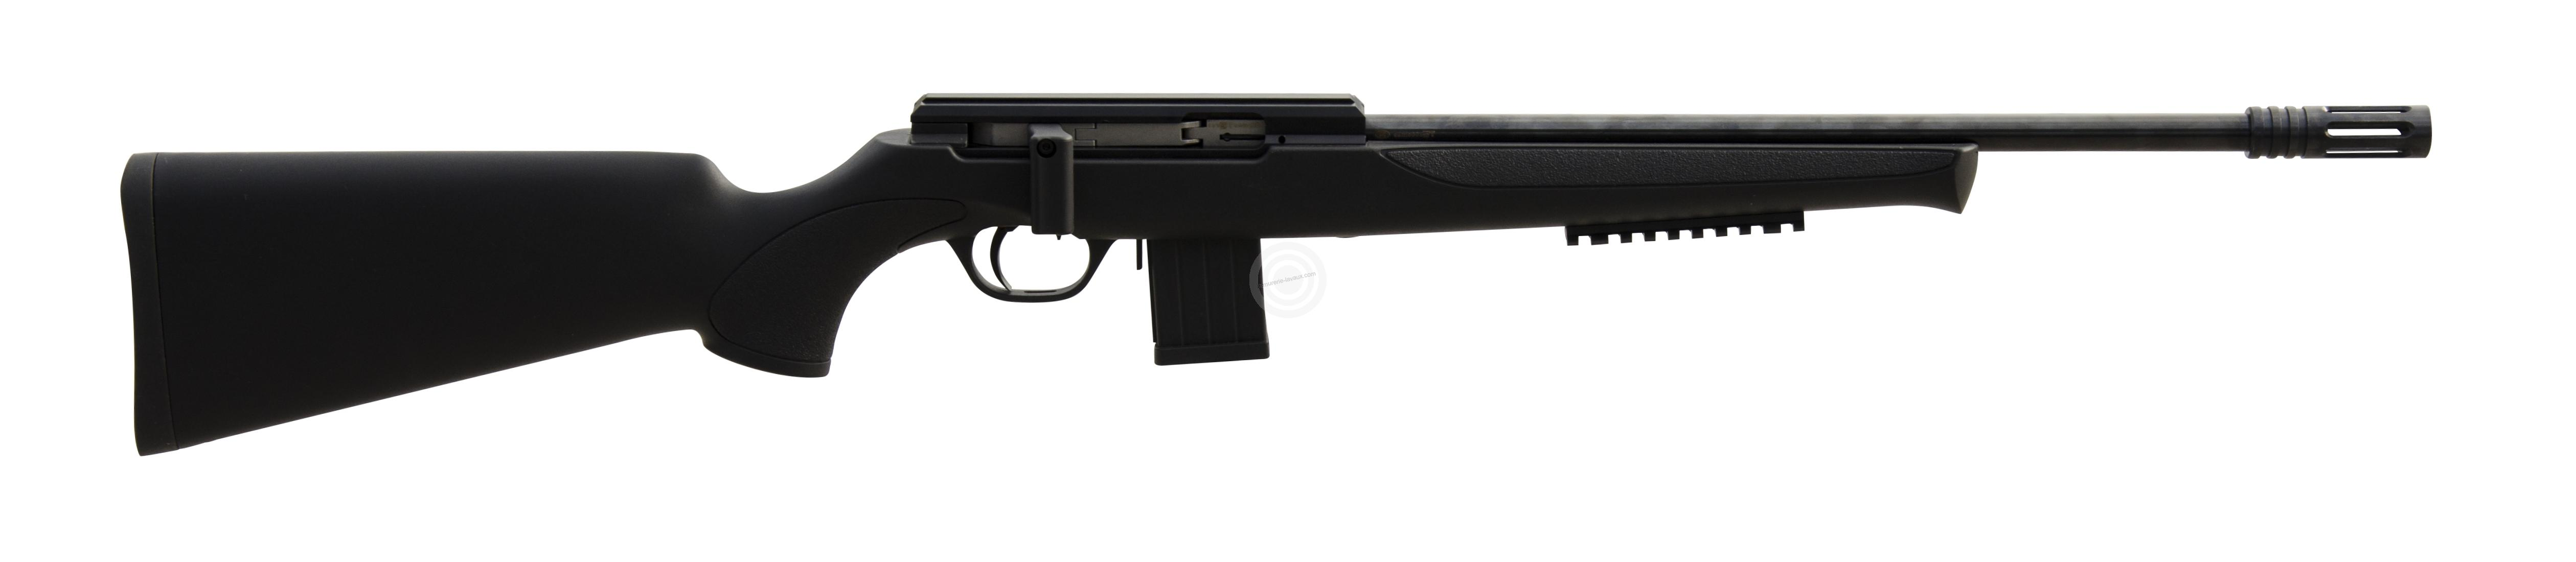 Carabine 22LR ISSC SPA Tactical